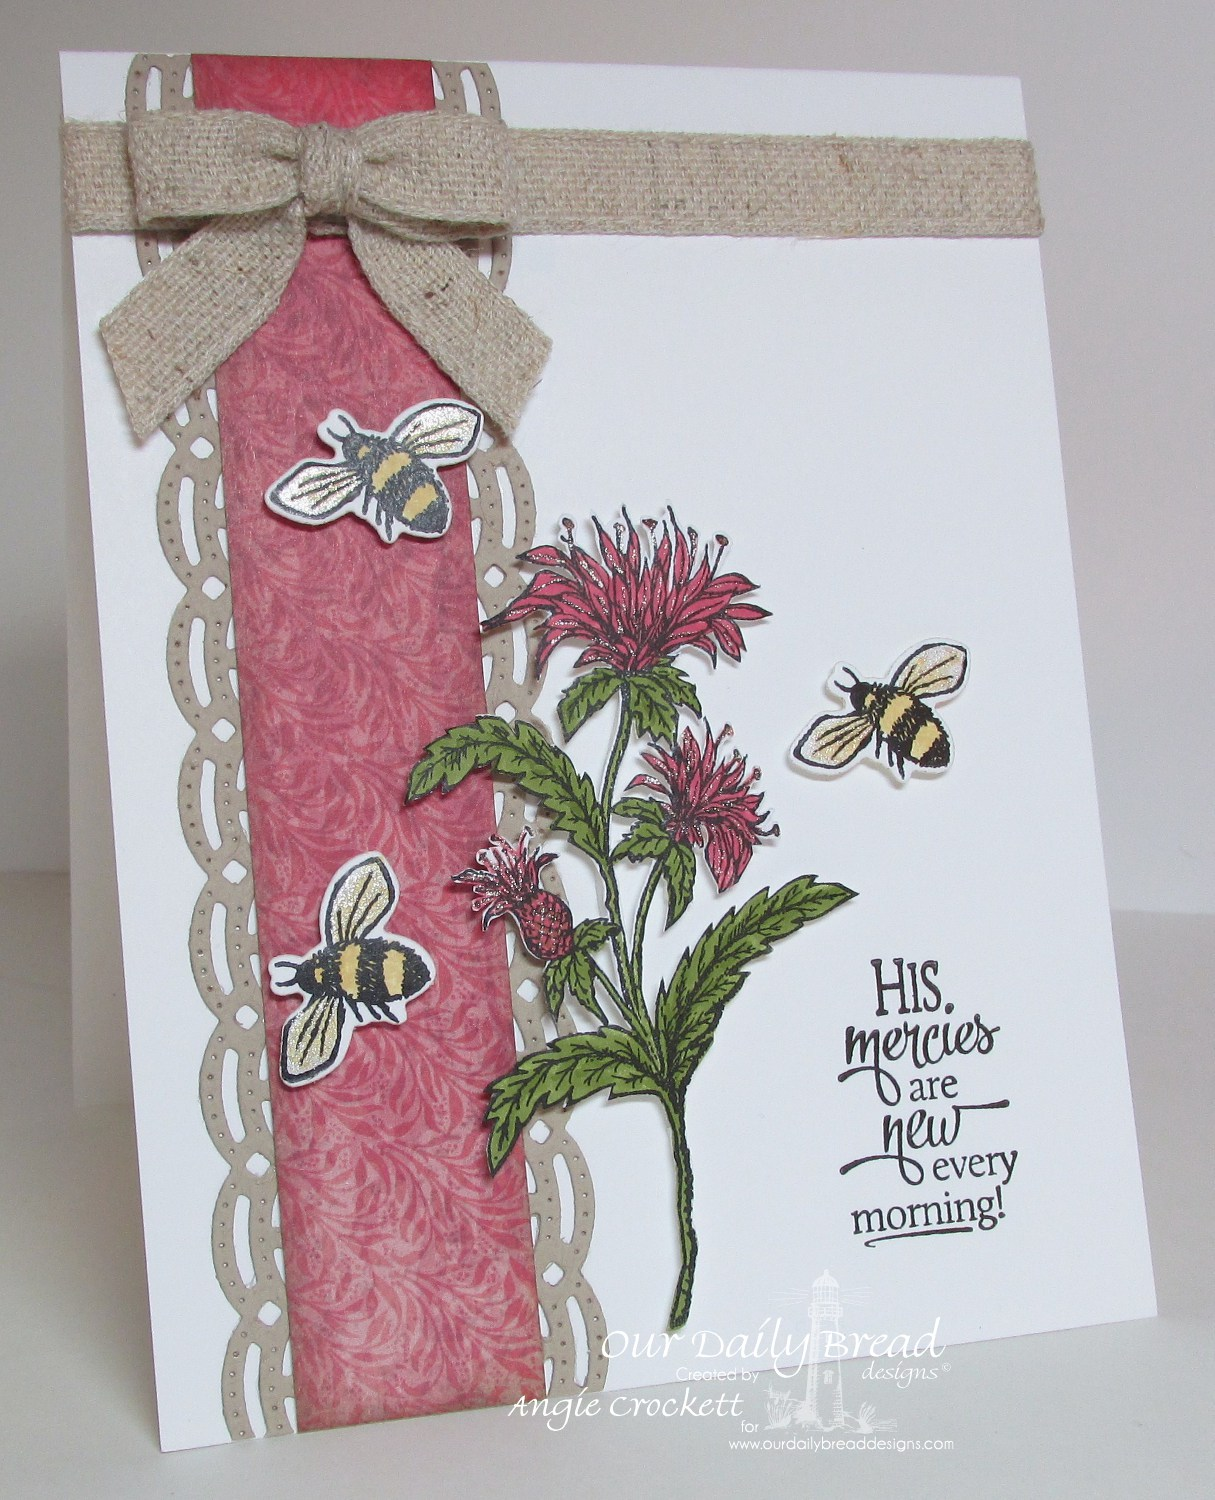 Stamps - Our Daily Bread Designs Sentiments Collection 3, Bee Balm, ODBD Blooming Garden Paper Collection, ODBD Custom Beautiful Borders Dies, Zinnia, ODBD Custom Zinnia and Leaves Die